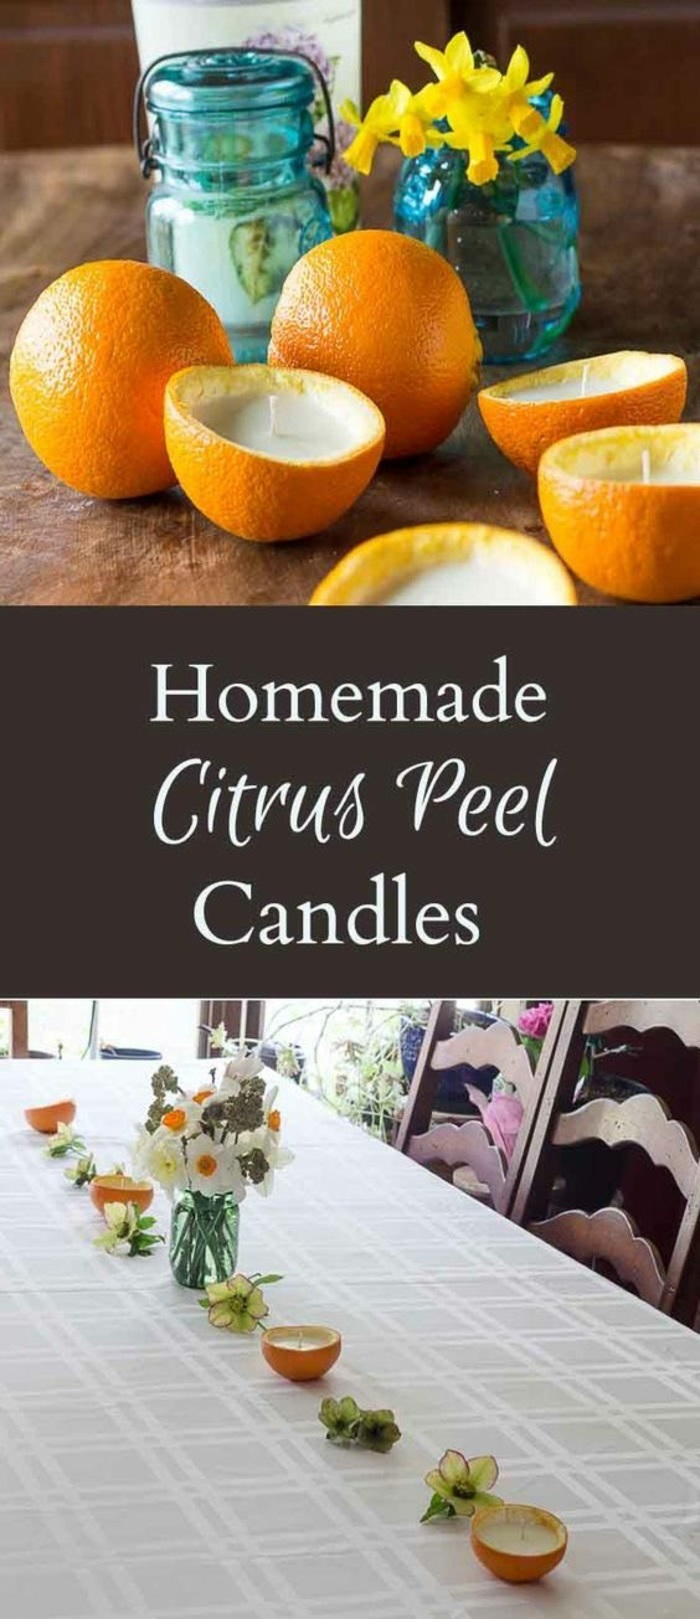 homemade citrus peel candles, sliced oranges in half, how to make scented candles, filled with candle waax